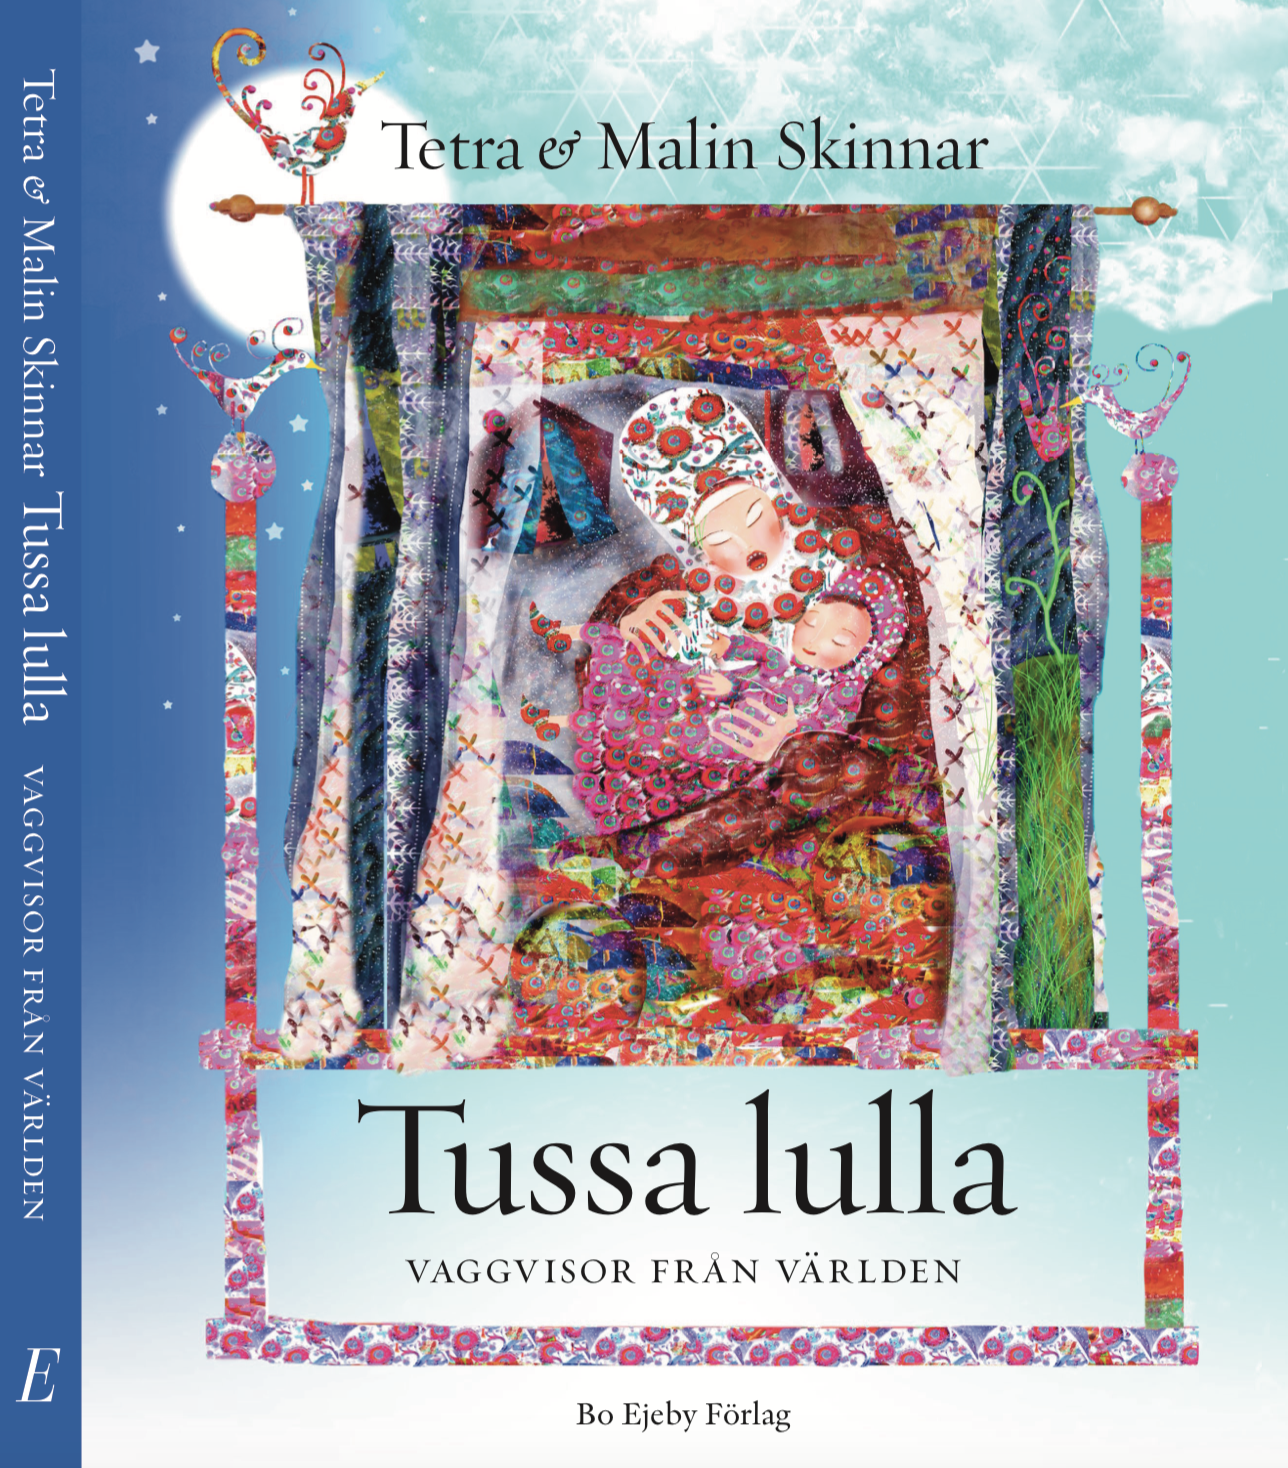 Tussa Lulla Lullabies from around the world, illustrator Malin Skinnar